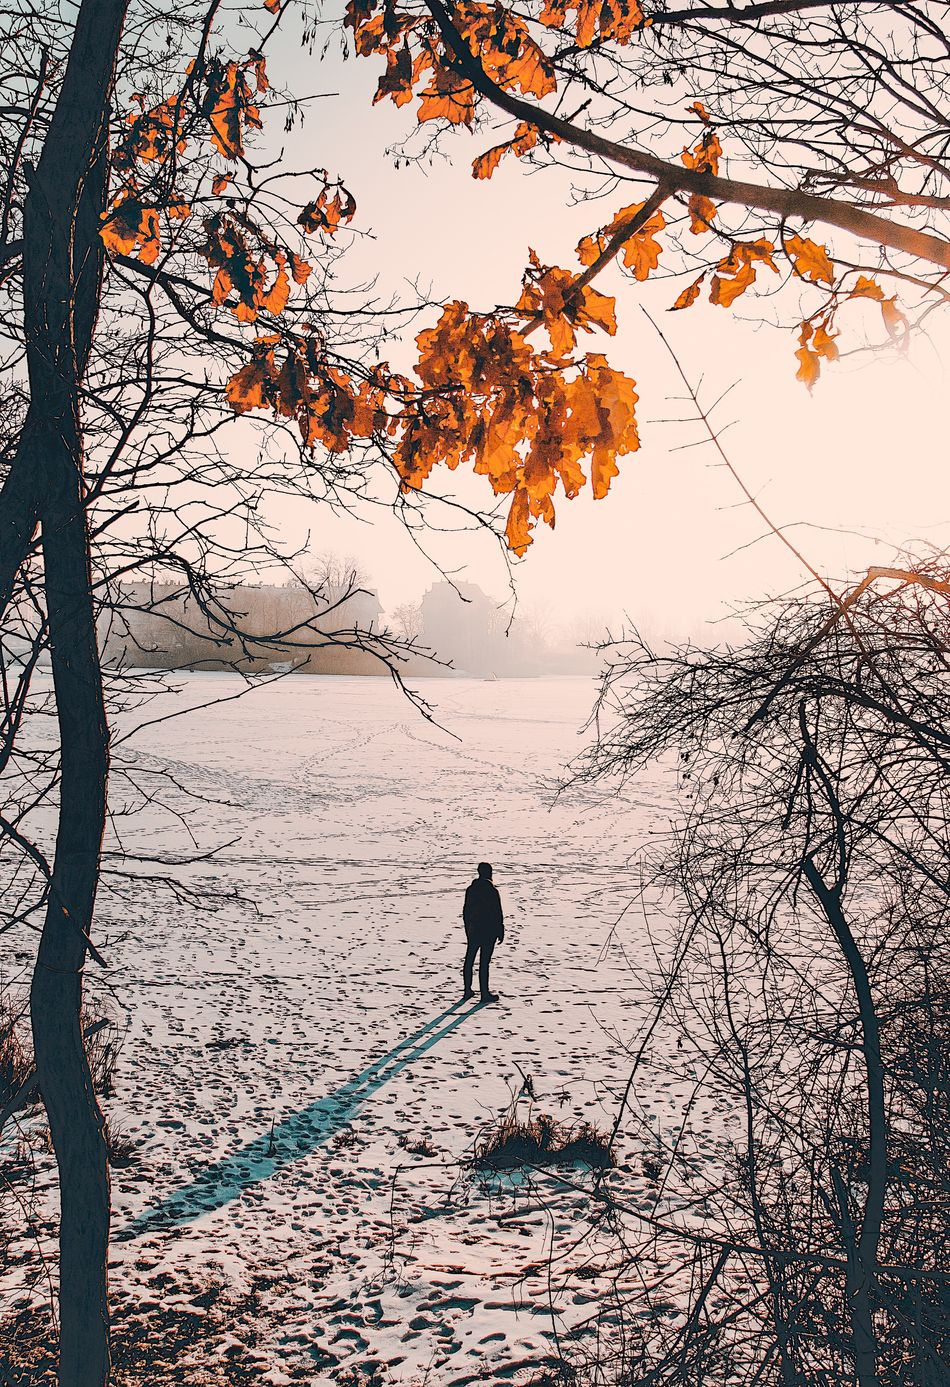 Cold Temperature Winter Tree Full Length Branch Nature Snow Outdoors Beauty In Nature One Person Autumn Day Warm Clothing Bare Tree Real People Landscape Men Only Men